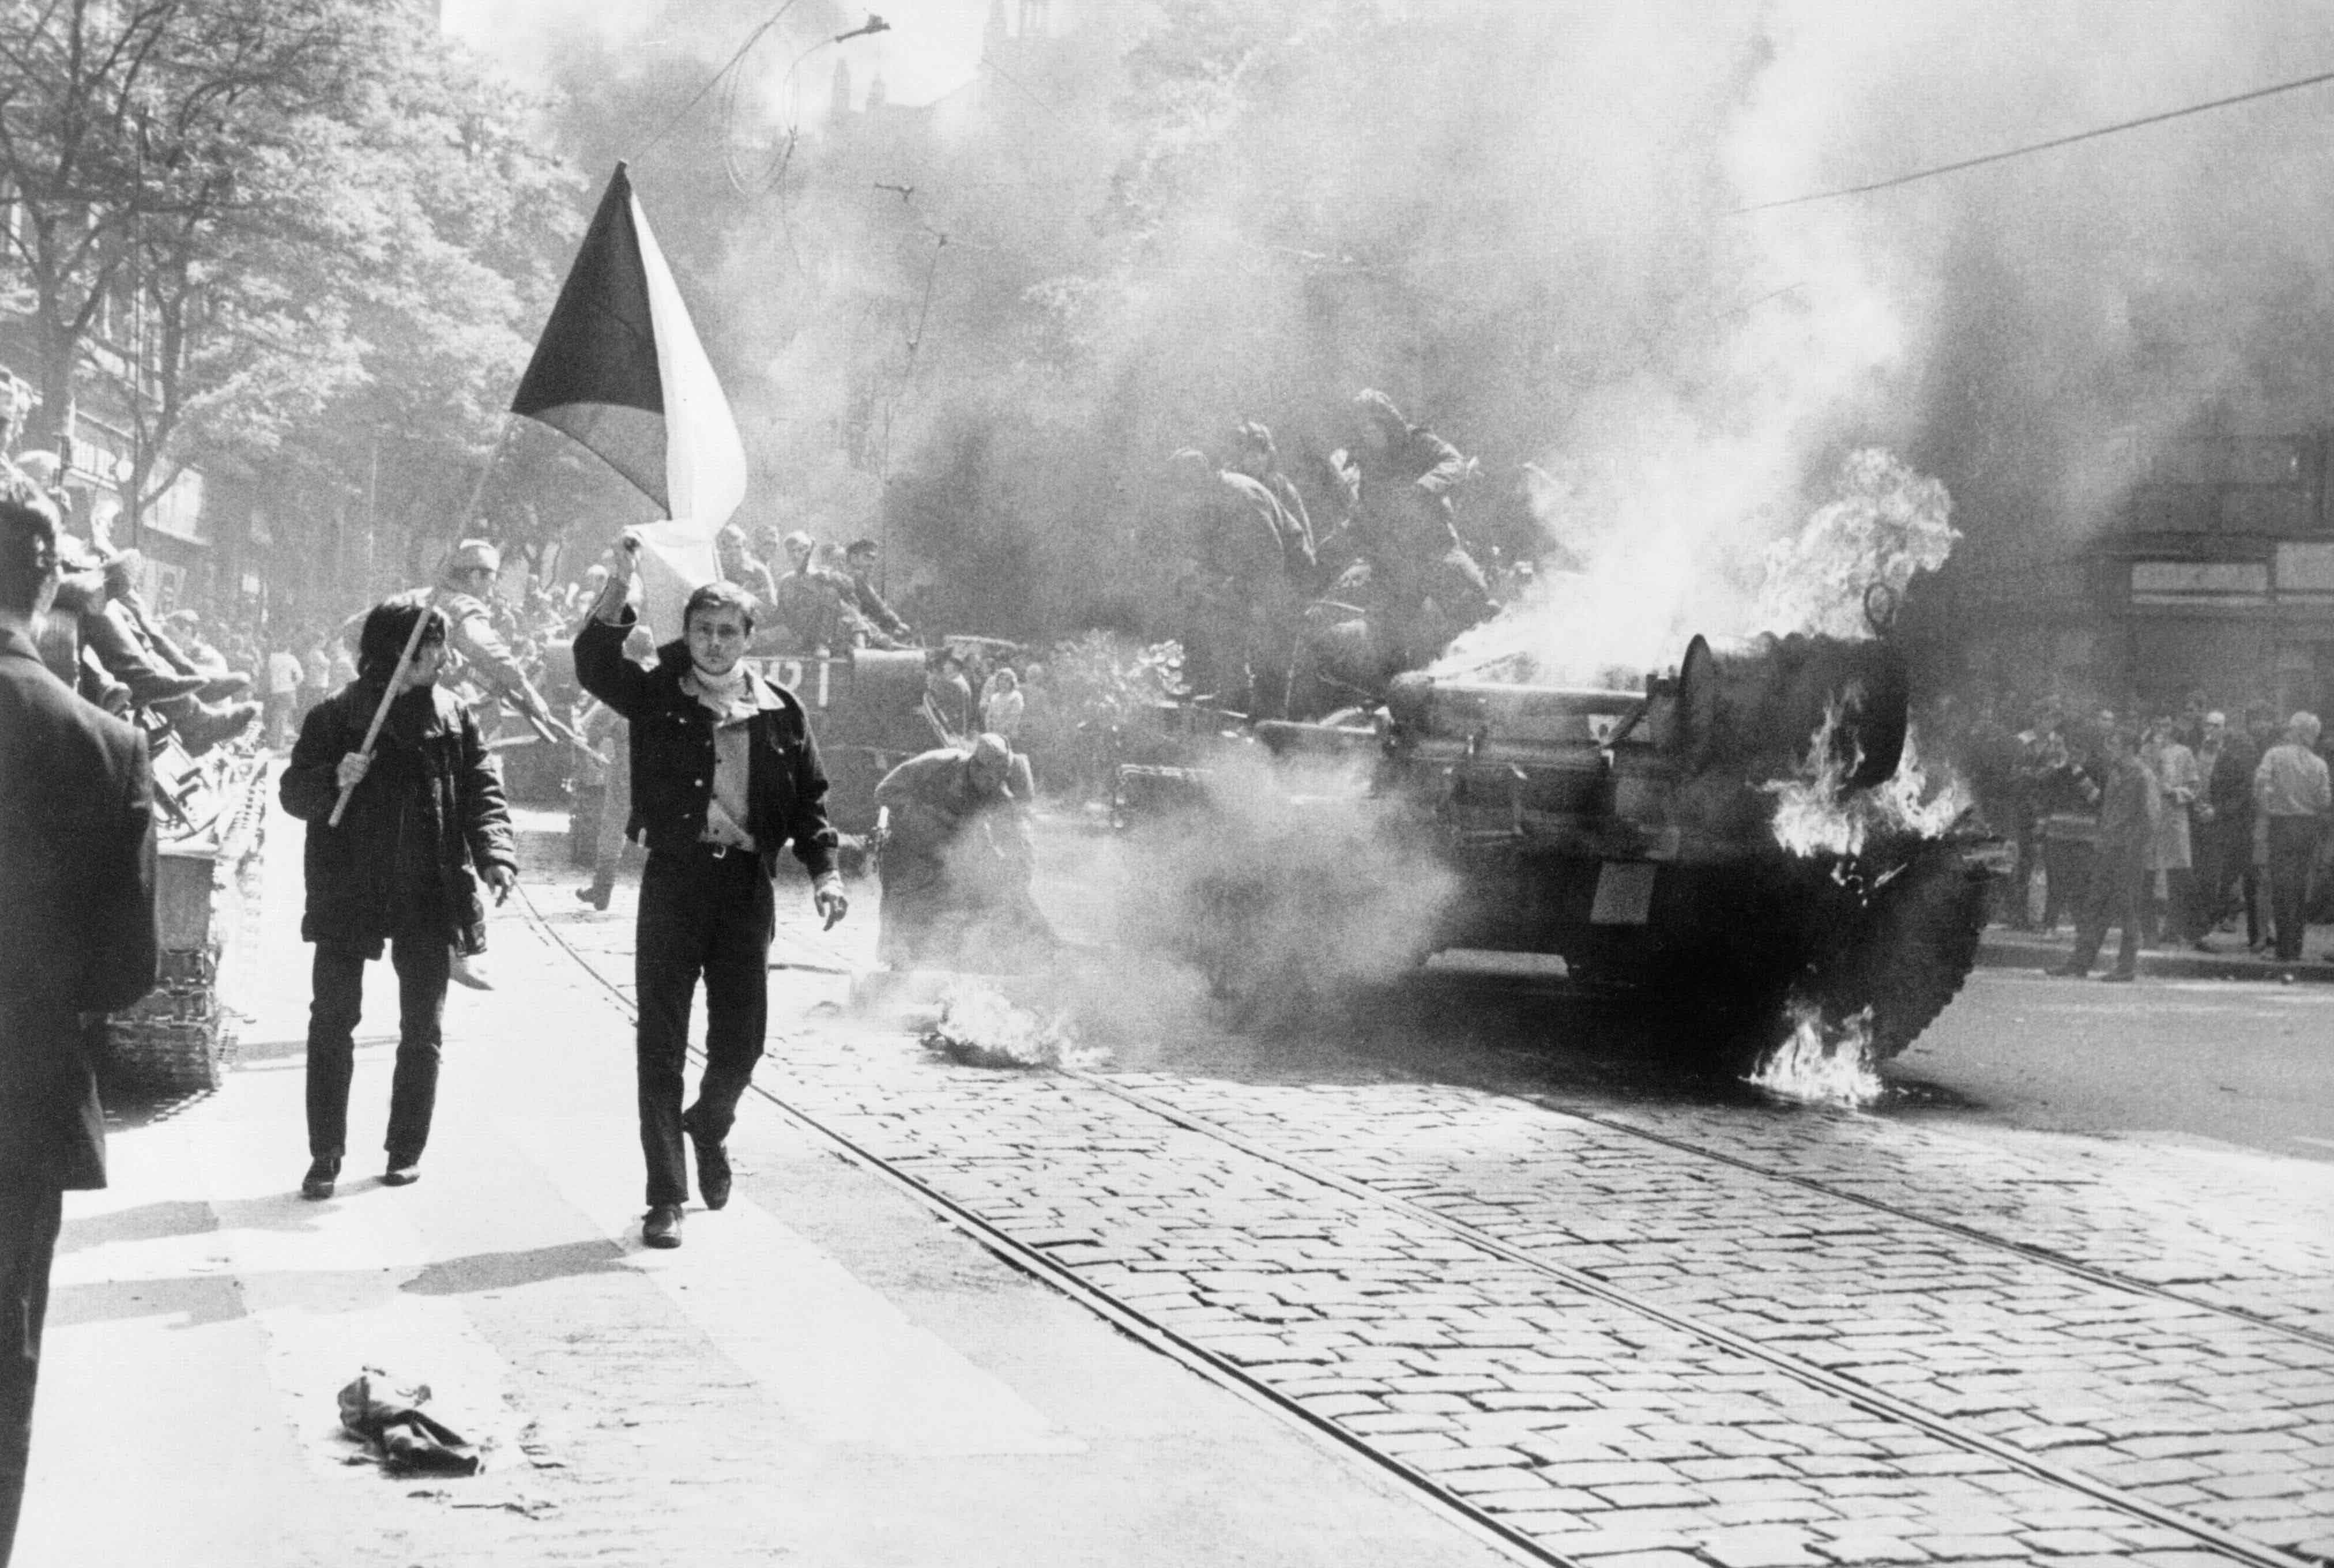 Brennender sowjetischer Panzer auf den Straßen Prags im späten August 1968. Public Domain, CIA Analysis of the Warsaw Pact Forces: The Importance of Clandestine Reporting